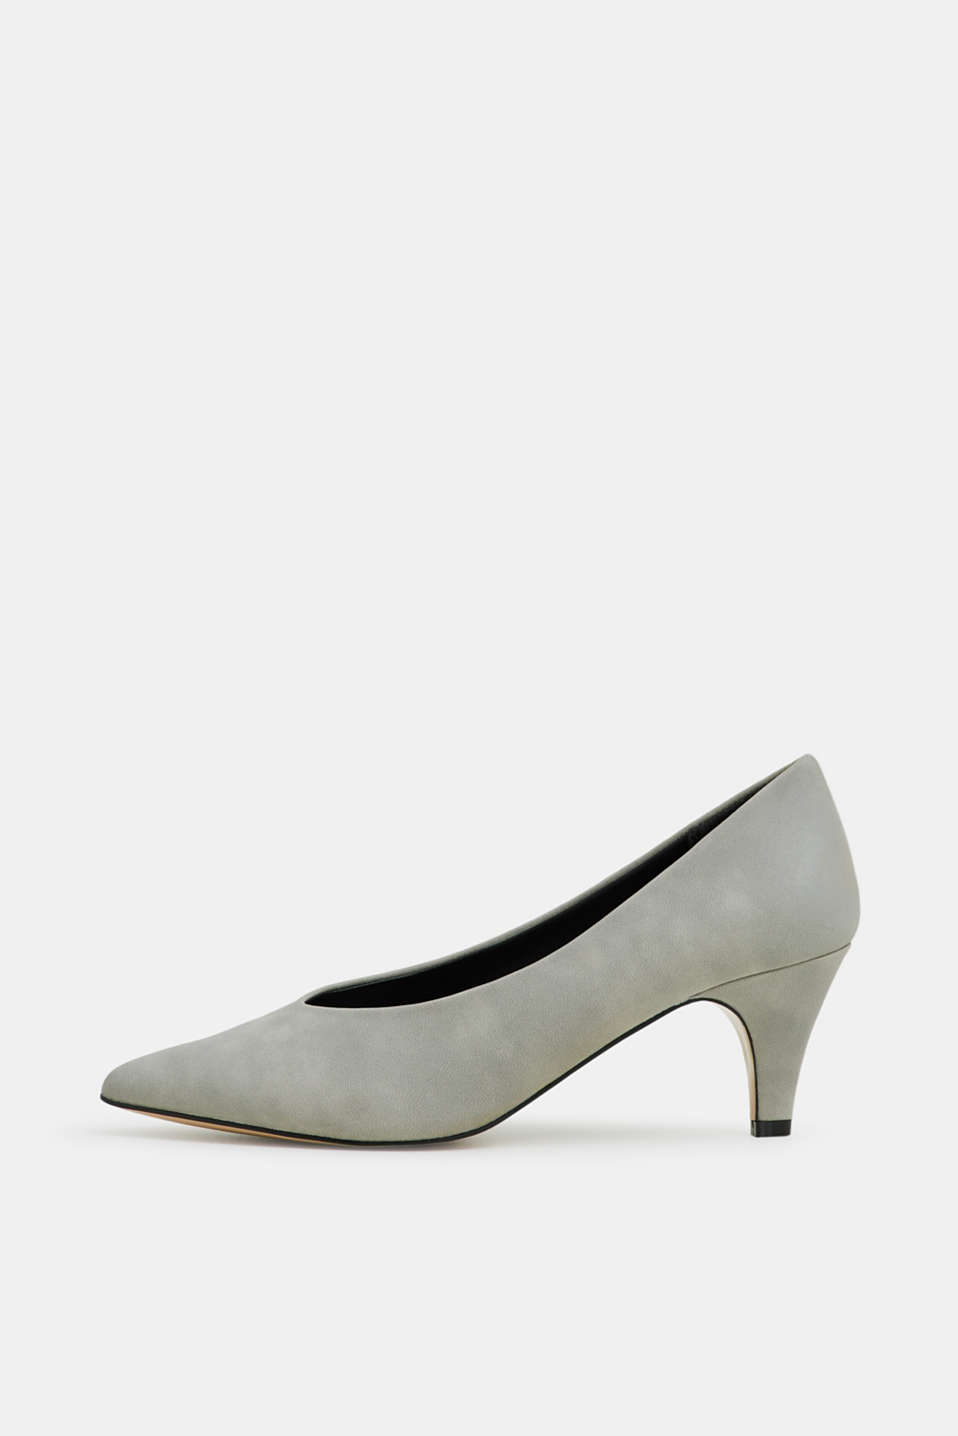 Esprit - Imitation nubuck court shoes